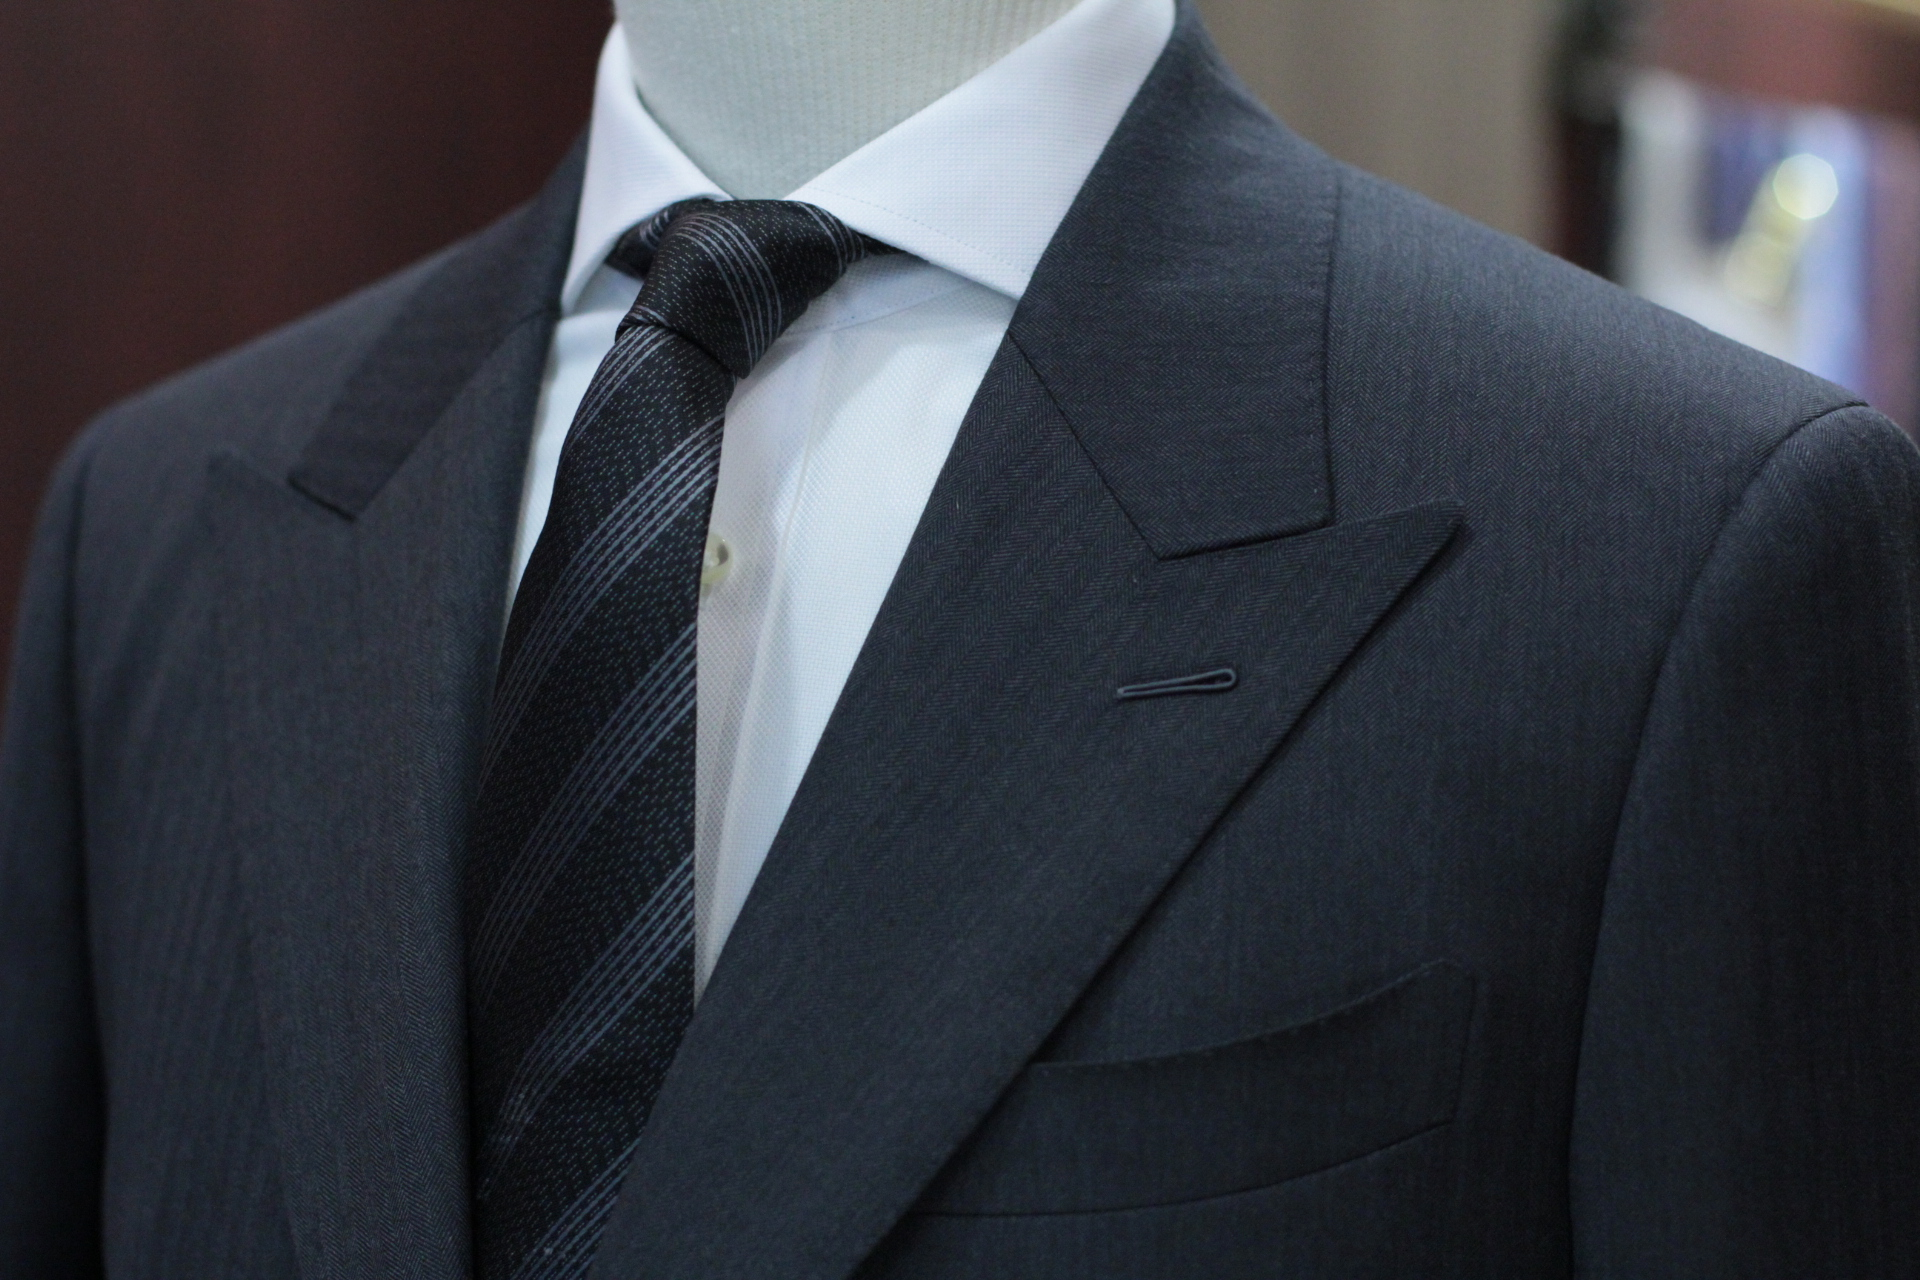 The Teller MADE SUITS Guabello Grey Herringbone Suits | Tailor Made Suits Singapore front 1.JPG